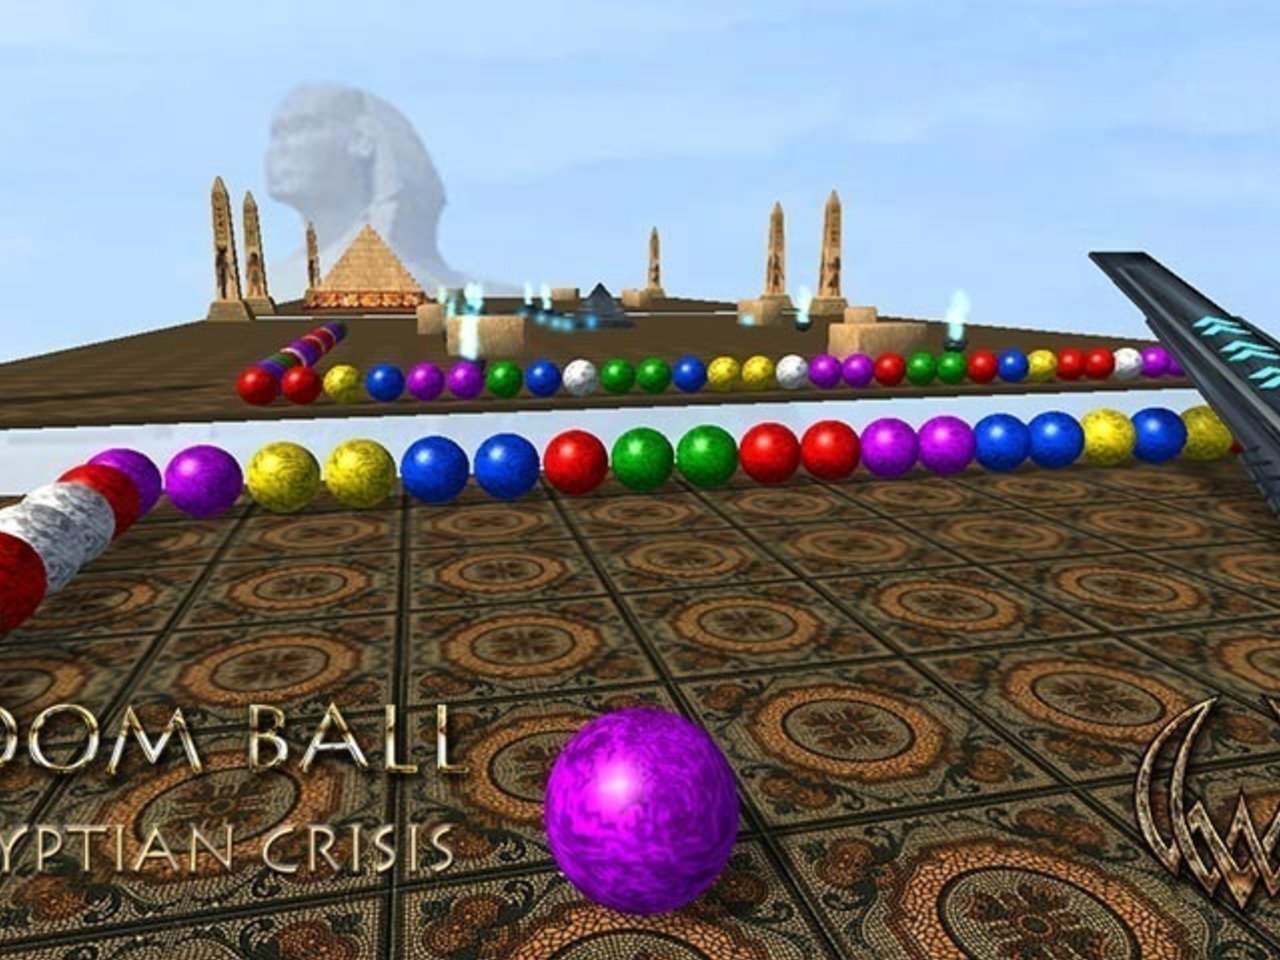 Boom Ball Egyptian crisis 3D puzzle match 3